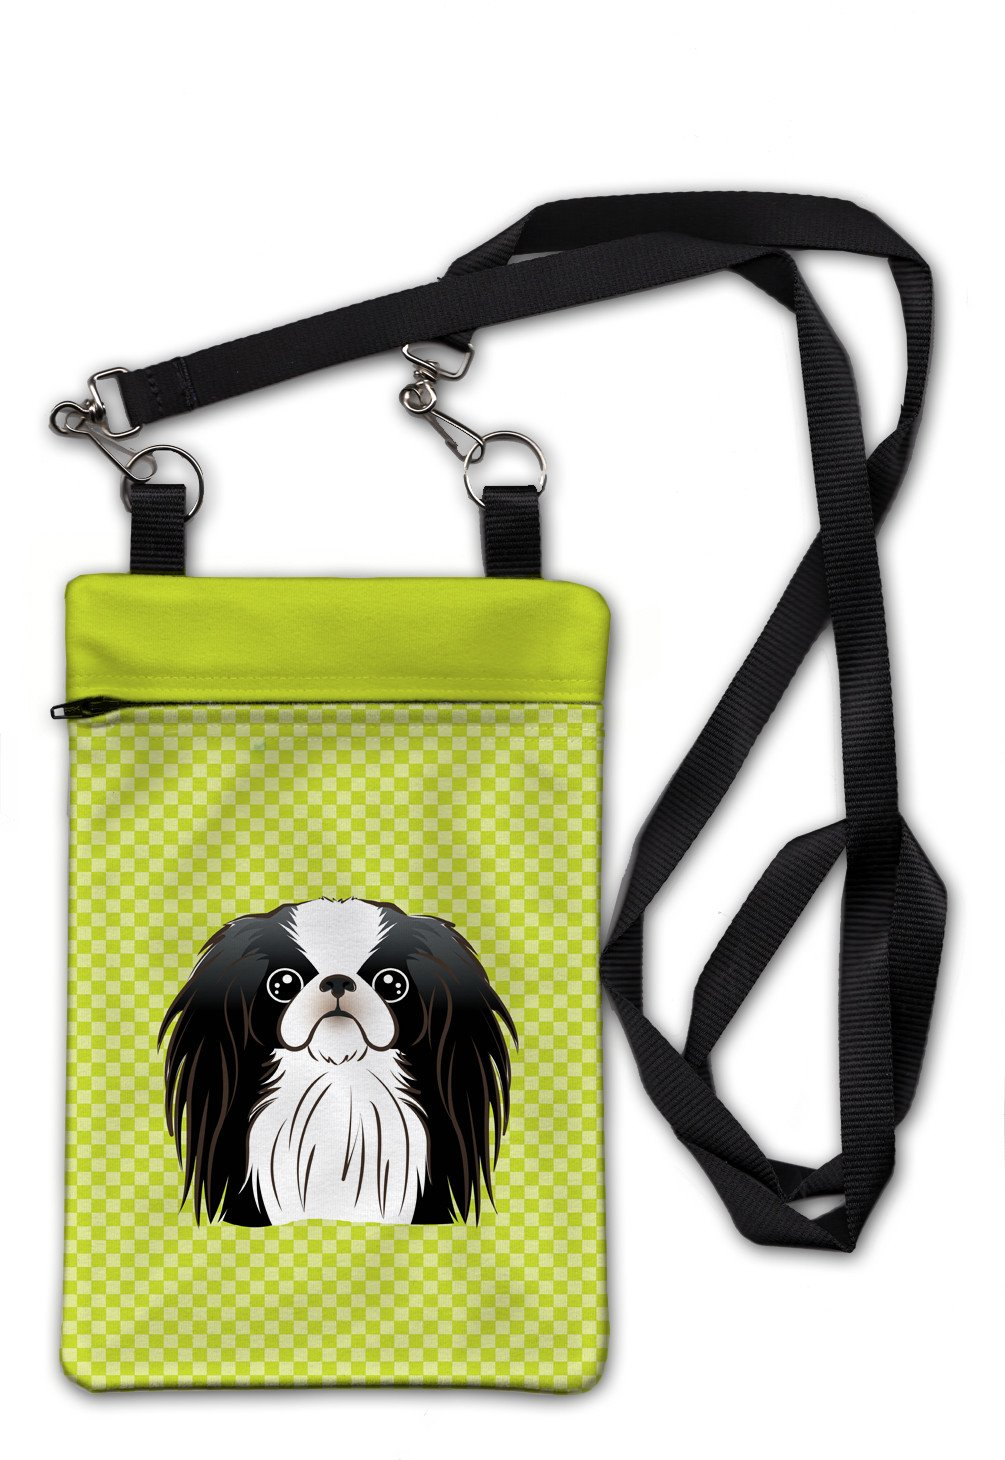 Checkerboard Lime Green Japanese Chin Crossbody Bag Purse BB1292OBDY by Caroline's Treasures